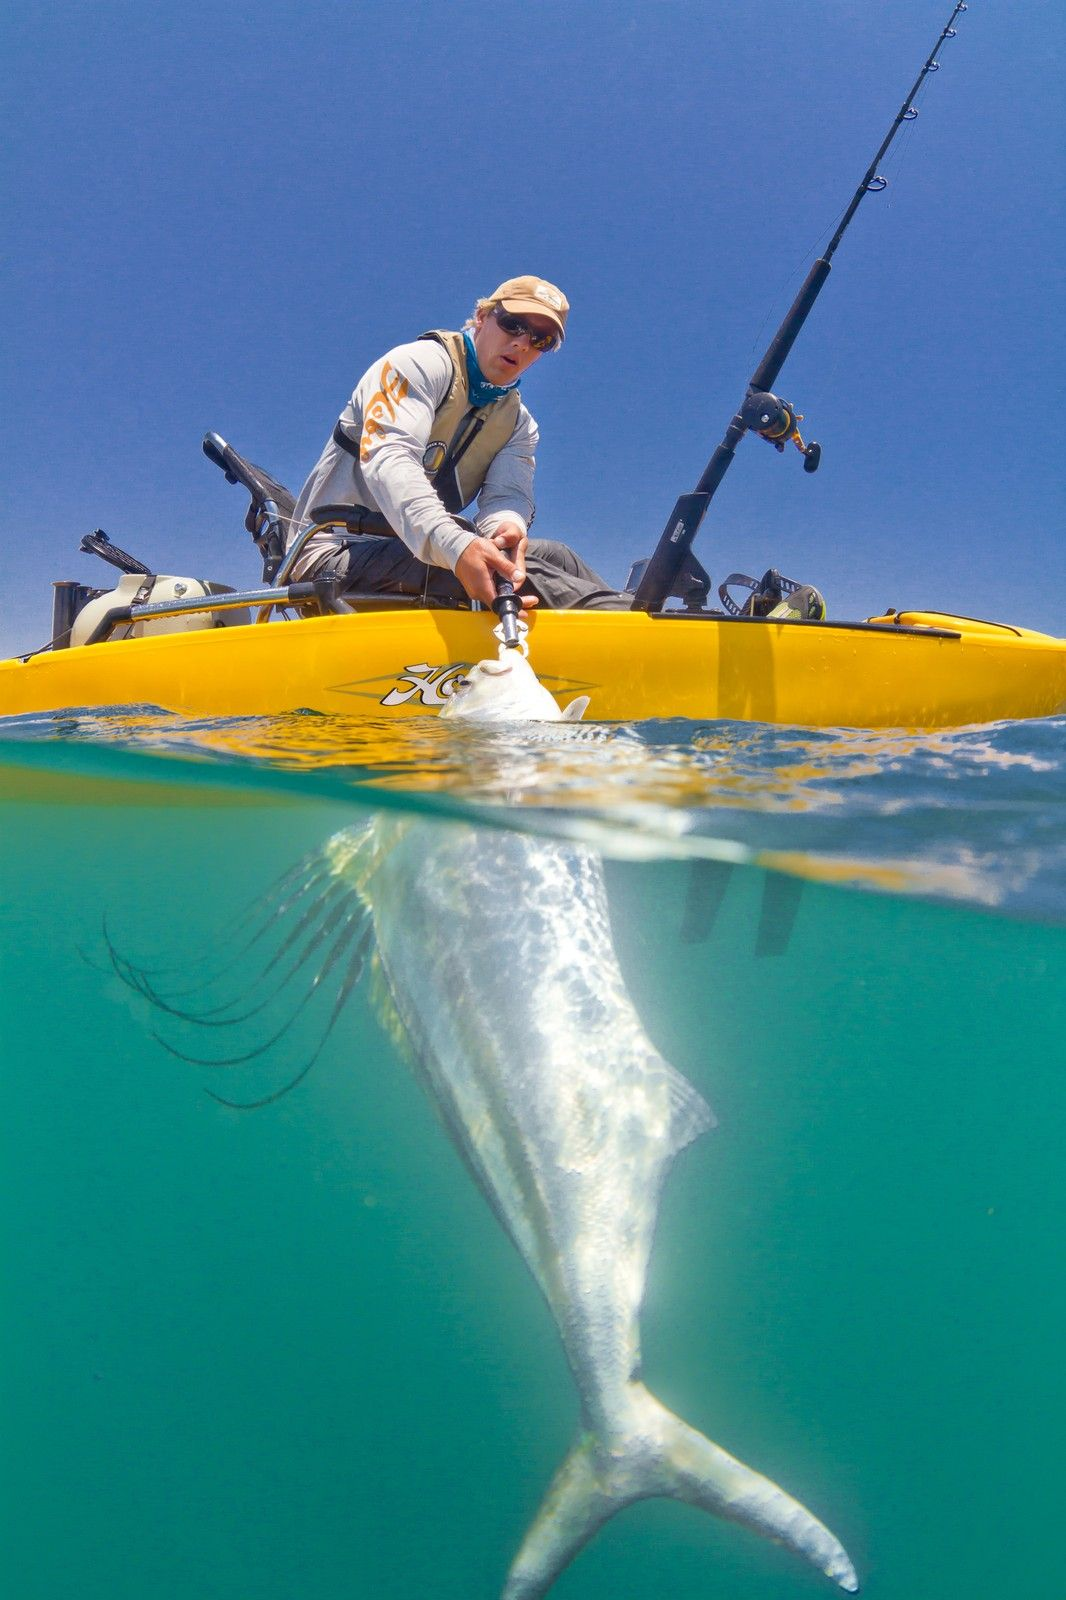 Mirage Pro Angler 12-a fishing kayak! | D☆D-Father's Day